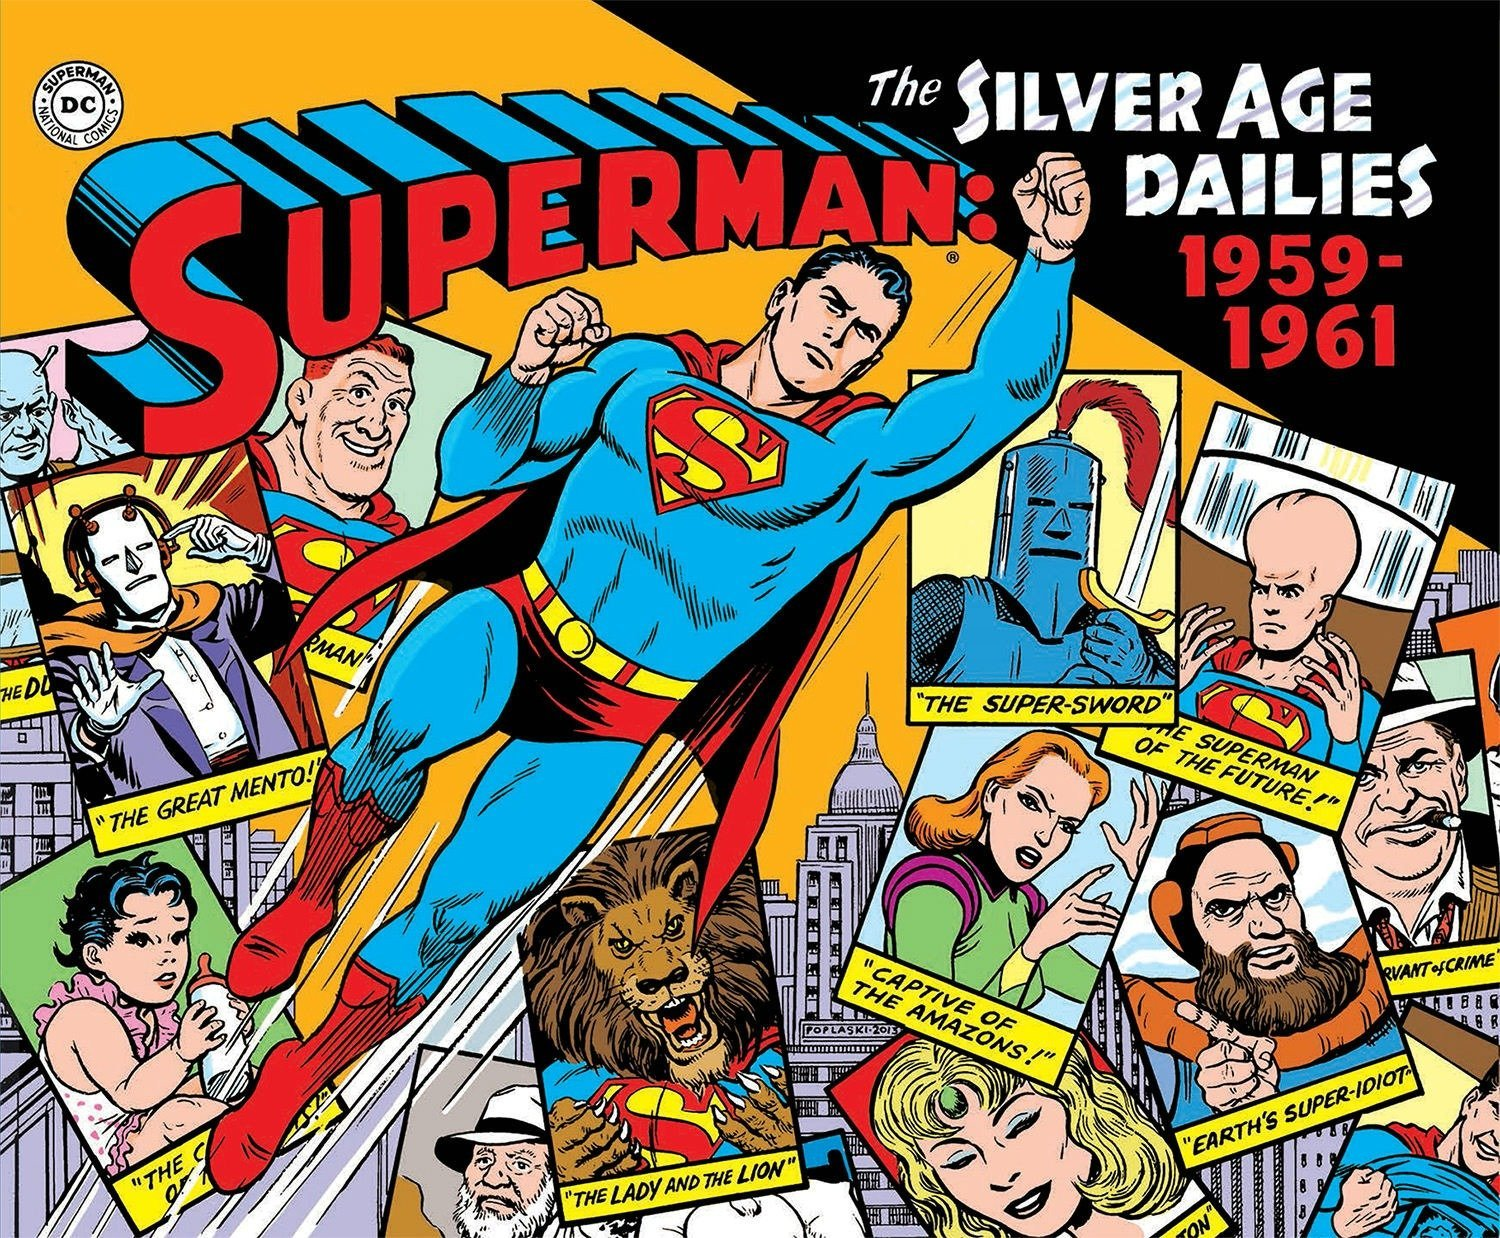 Superman: The Silver Age Newspaper Dailies Volume 1: 1959-1961 (Superman Silver Age Dailies) by IDW Publishing